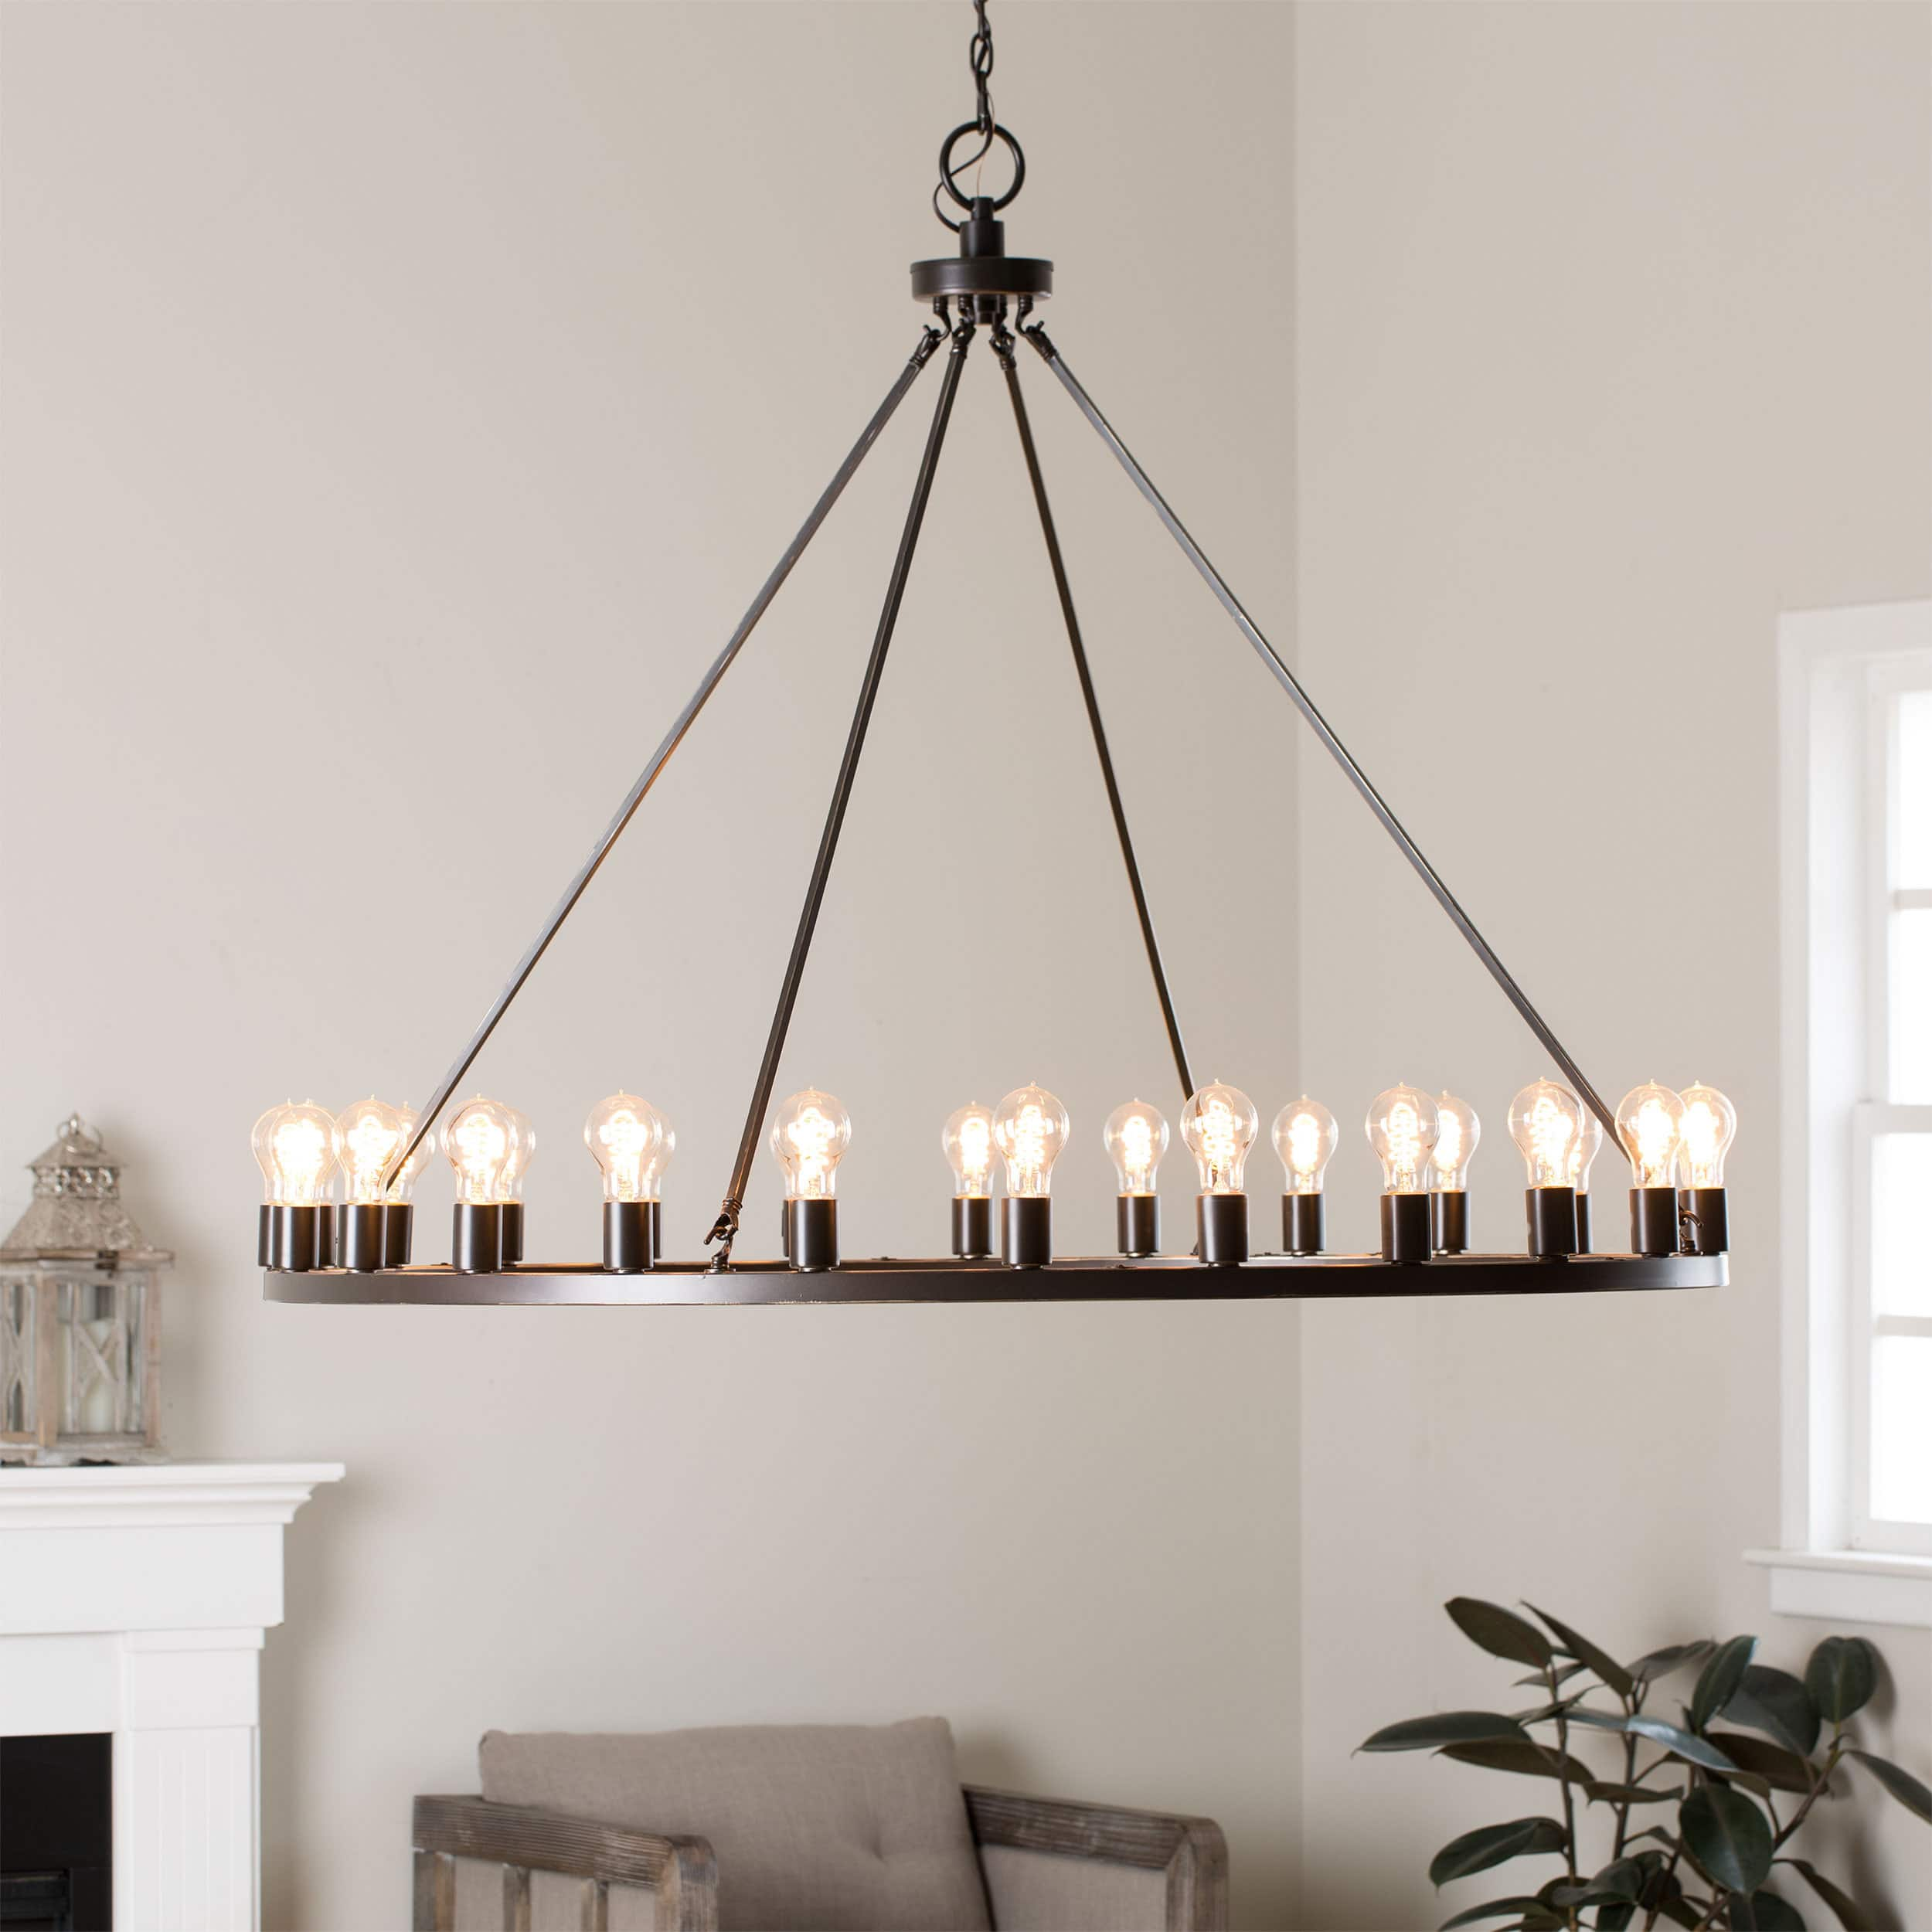 Buy Ceiling Lights Online At Overstock.com